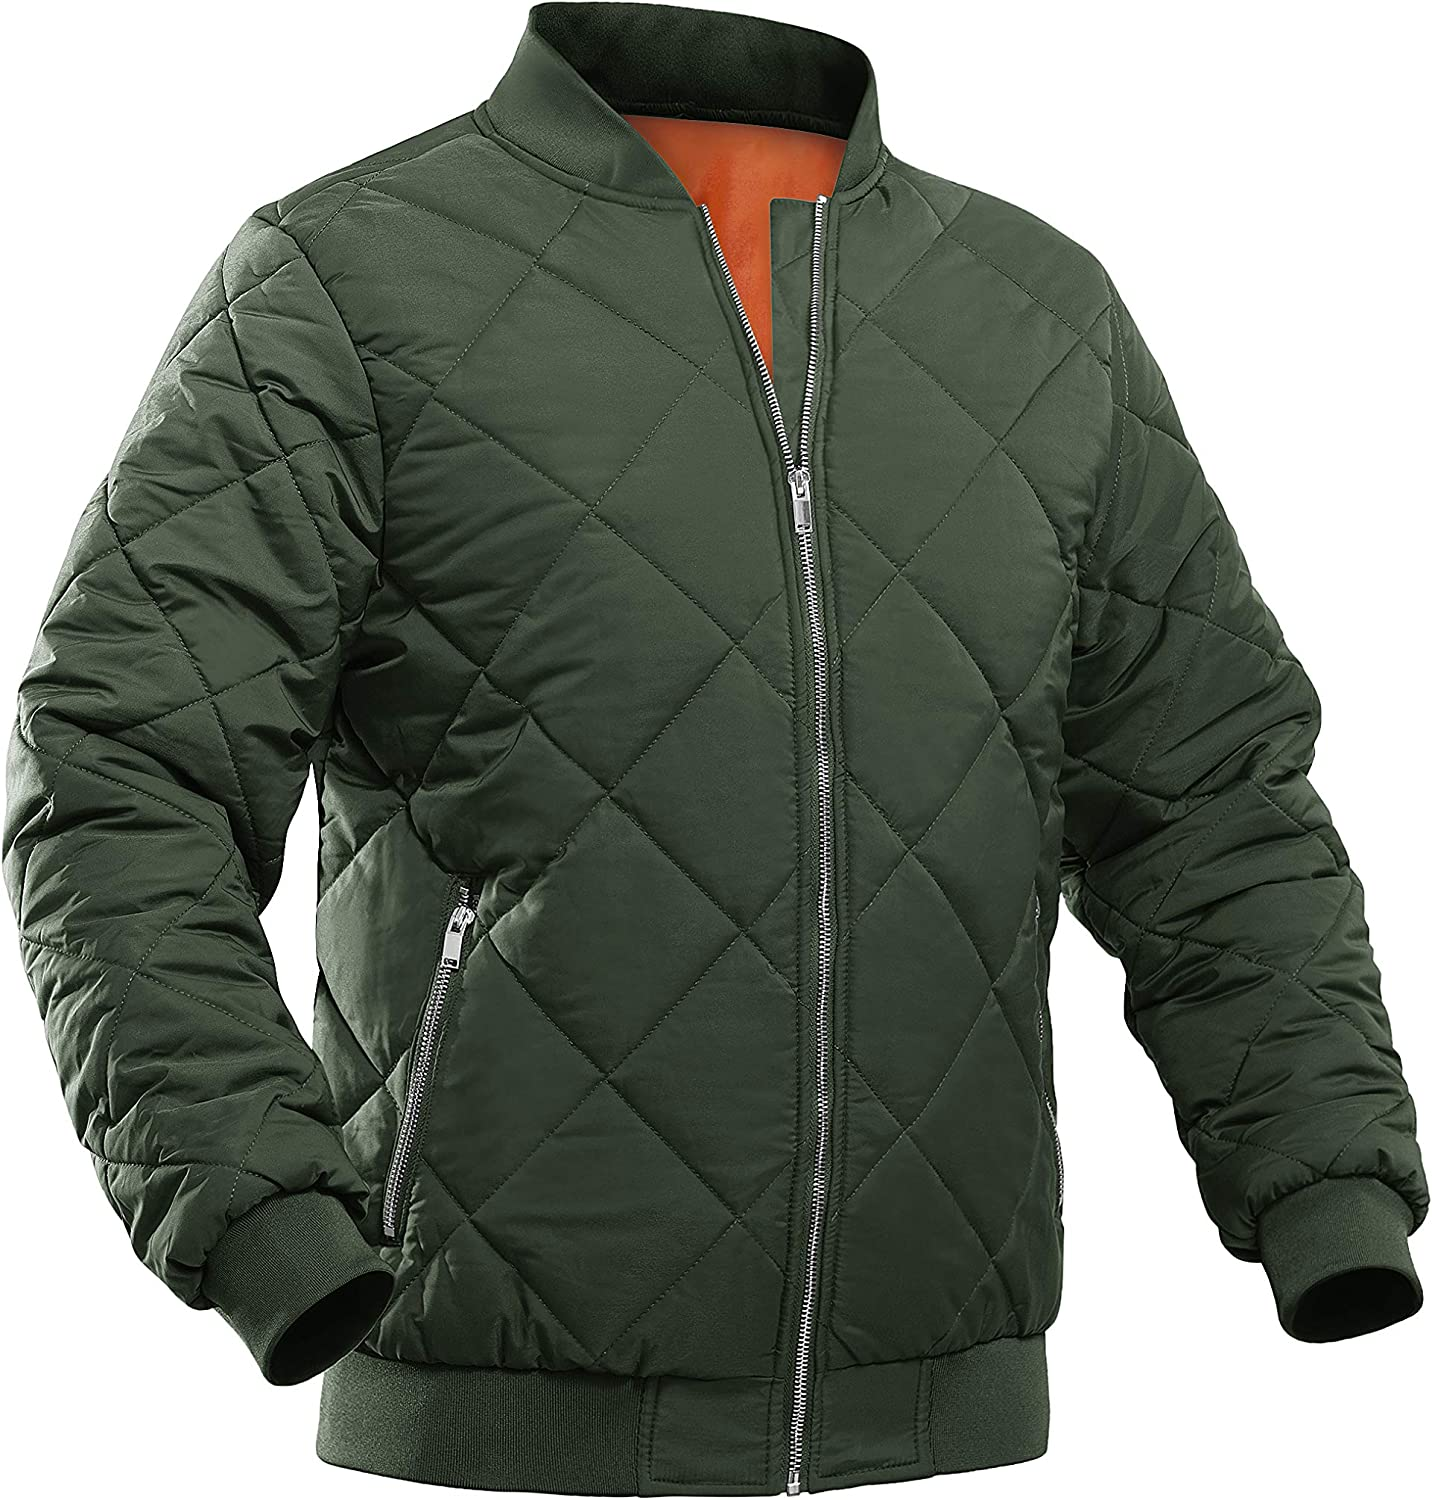 MAGCOMSEN Max 82% OFF Men's Winter Bomber Jacket Outerwear Down Zipper with High order